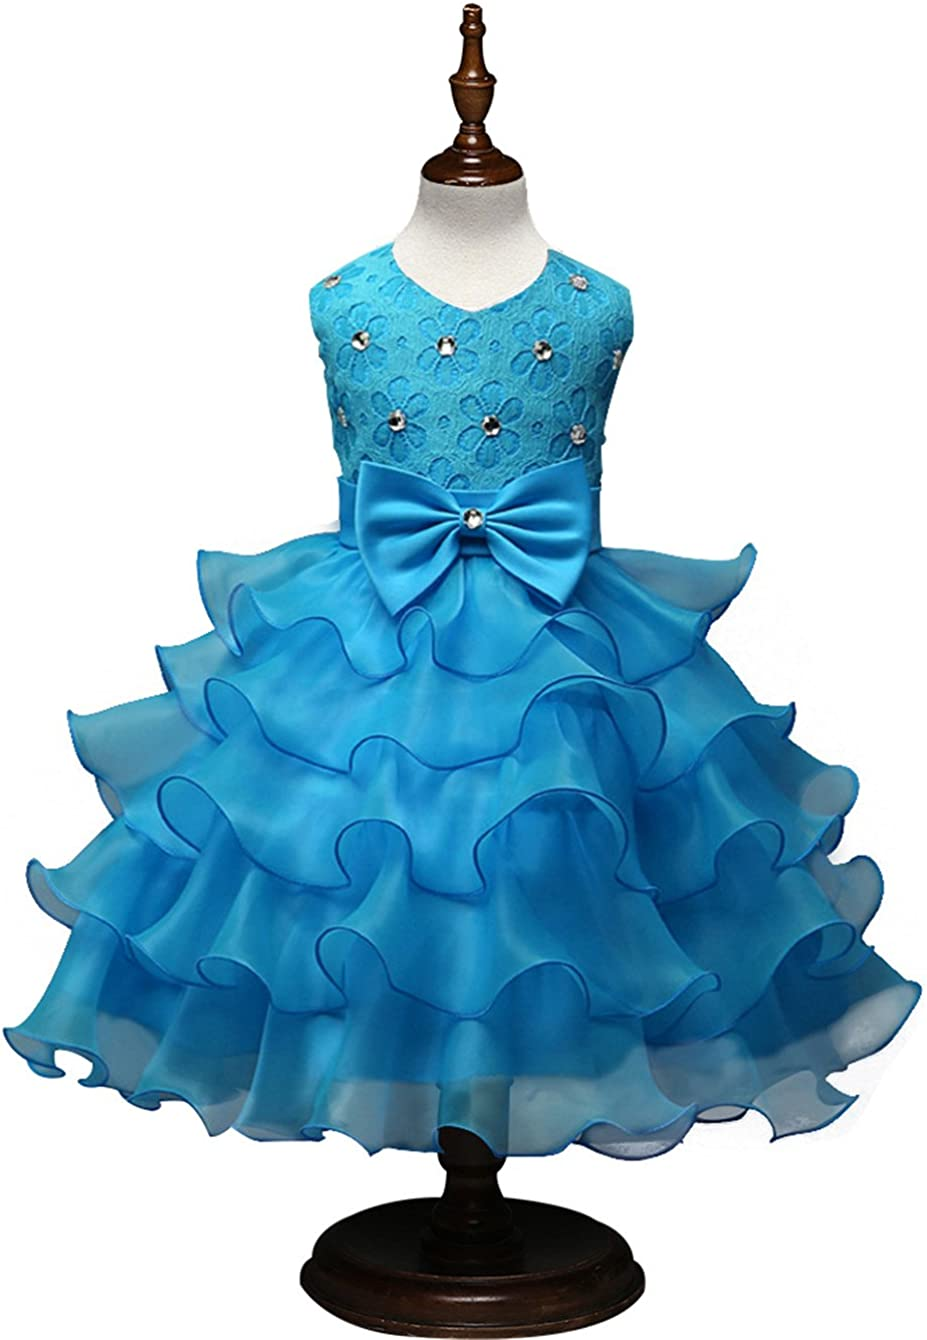 Csbks Girls Wedding Party Dress Pageant Baby Ruffles Tulle Princess Dresses